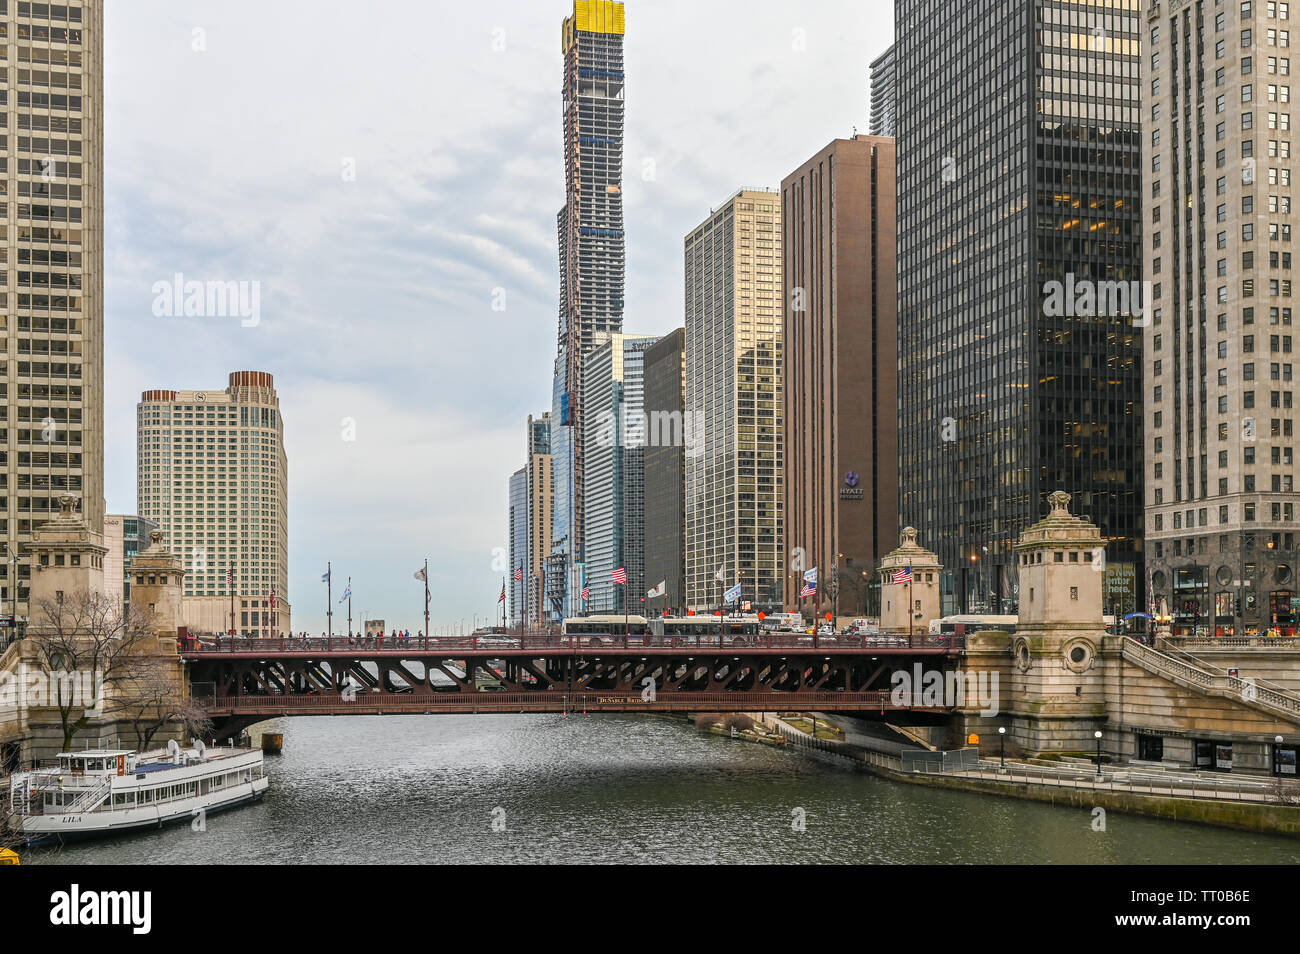 Chicago river and Michigan Avenue Bridge on a cloudy day in March 2019 - Stock Image